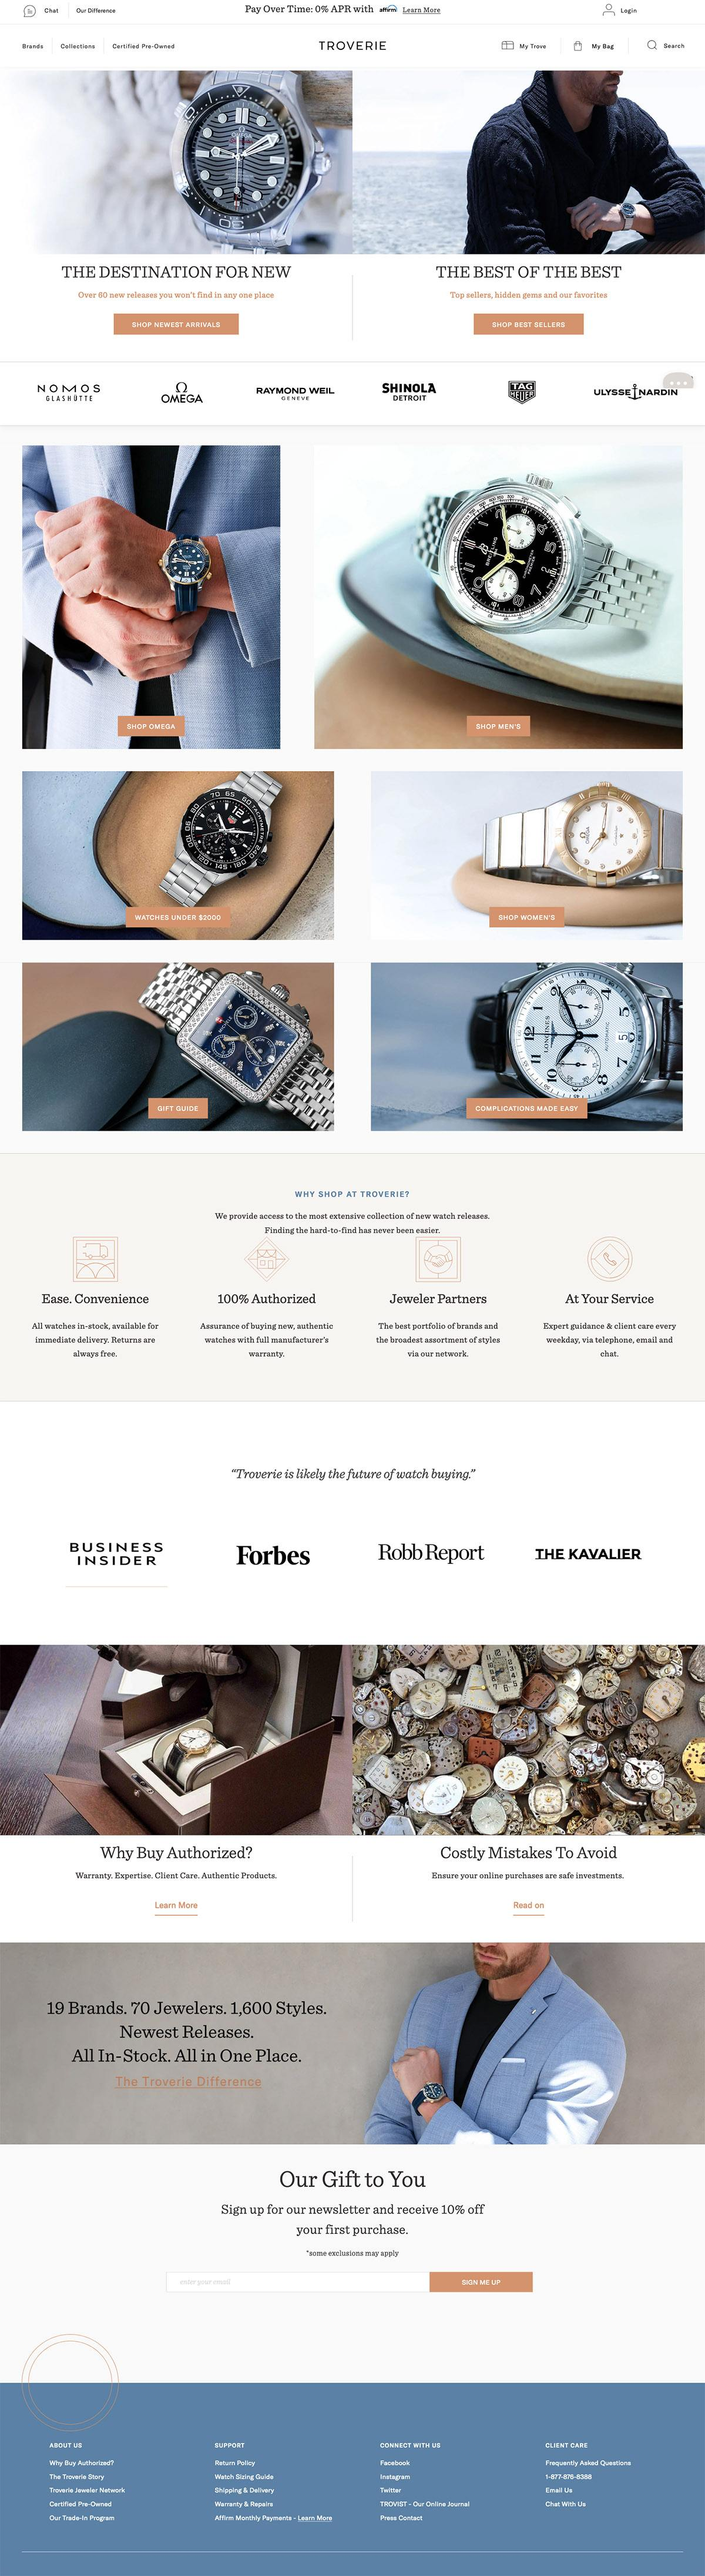 eCommerce website: Troverie